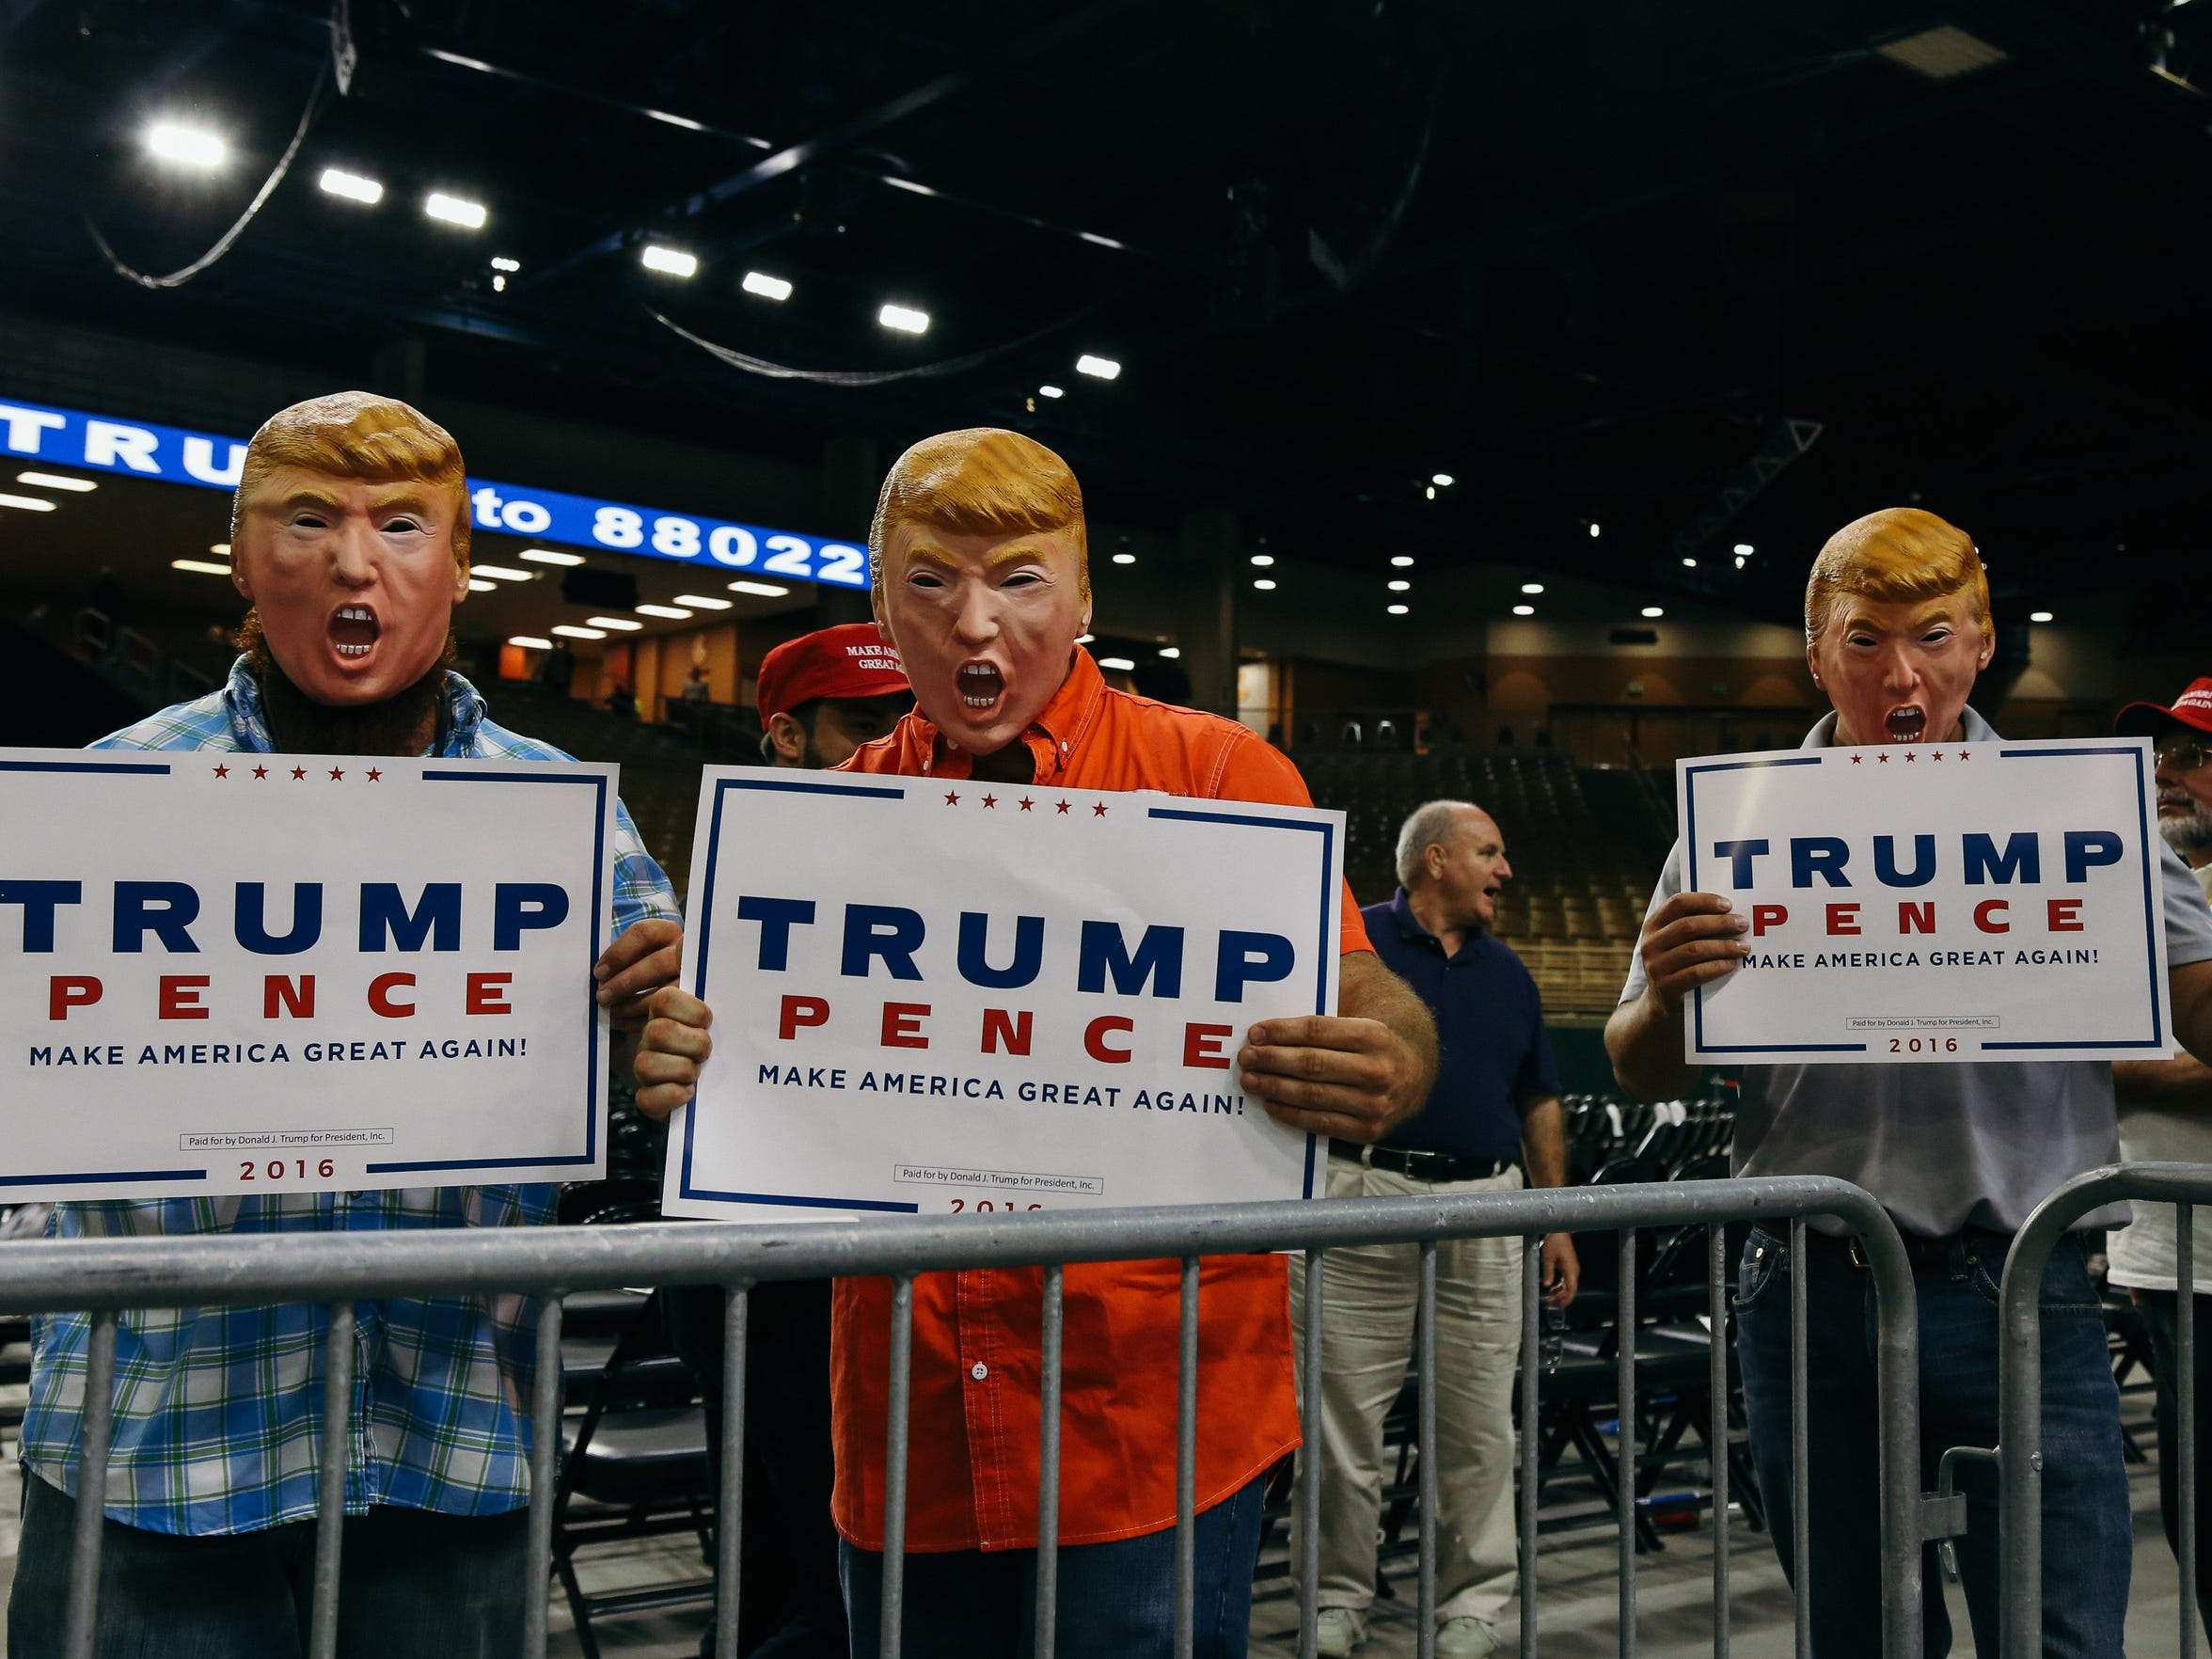 Donald Trumo held a rally at the Silver Spurs Arena in Kissimmee, Fla., on Thursday, August 11, 2016.